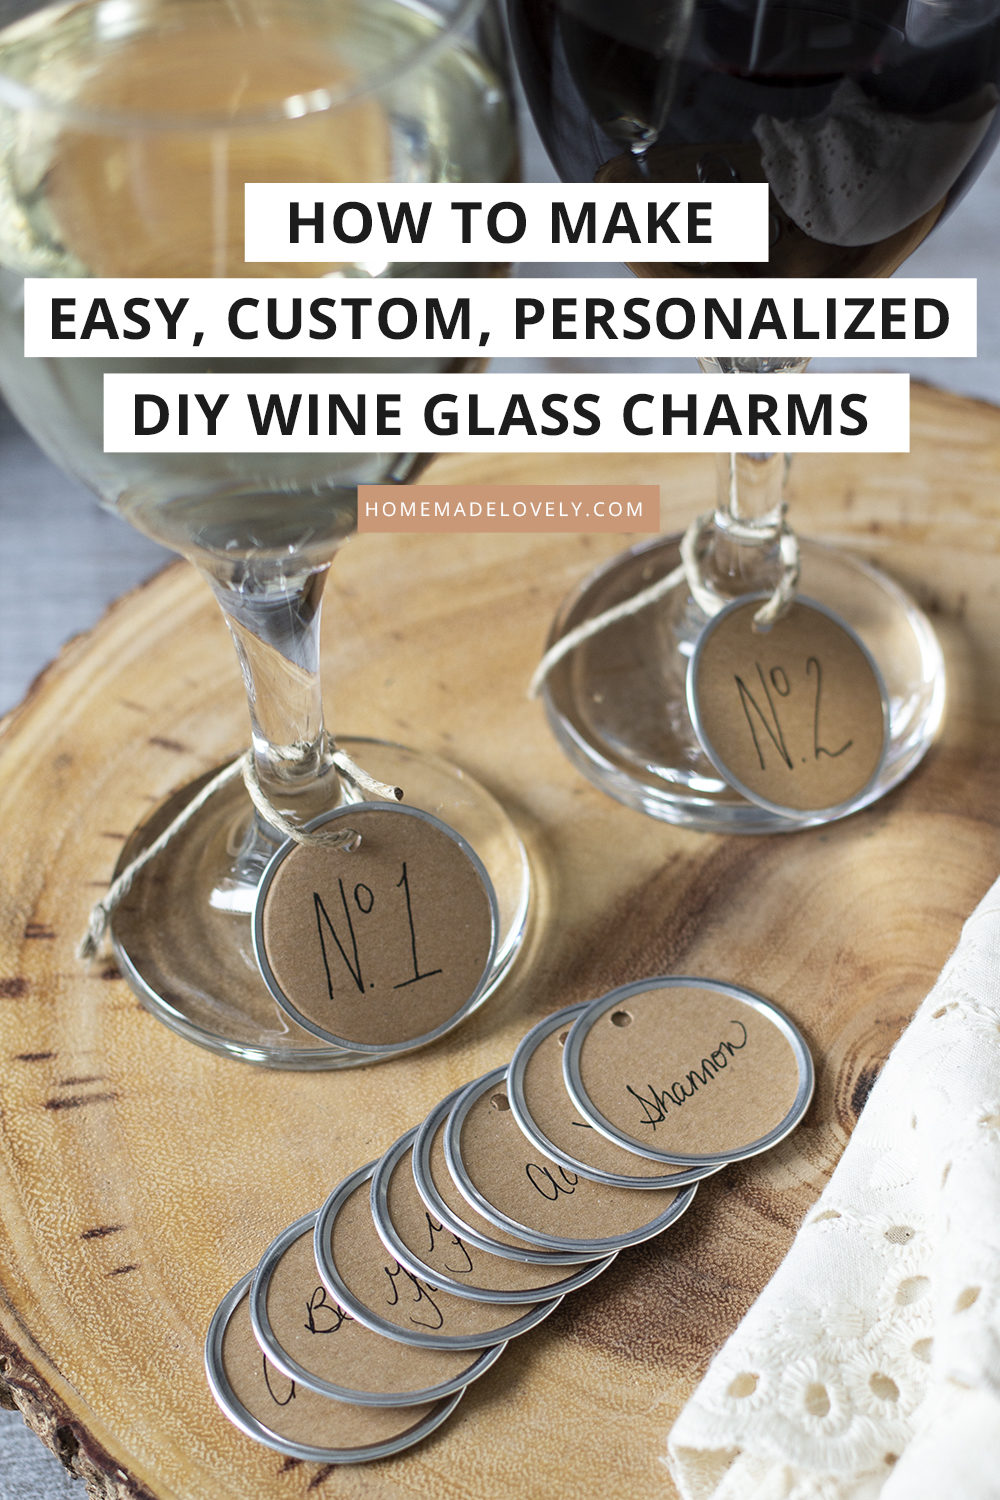 diy paper ring wine glass charms with text overlay